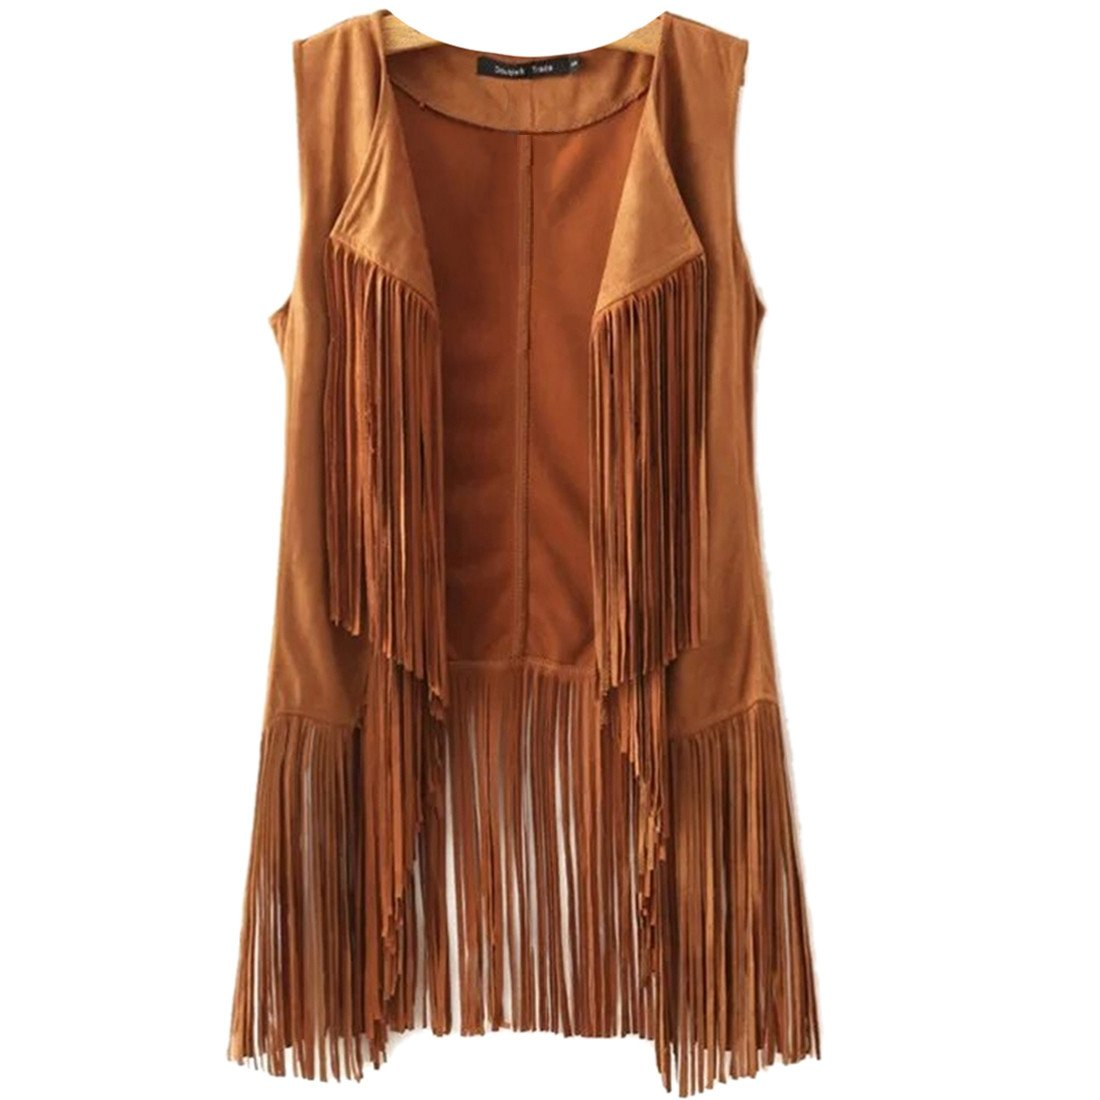 Amazon.com: New Tassels Fringe Sleeveless Suede Vest Cardigan ...